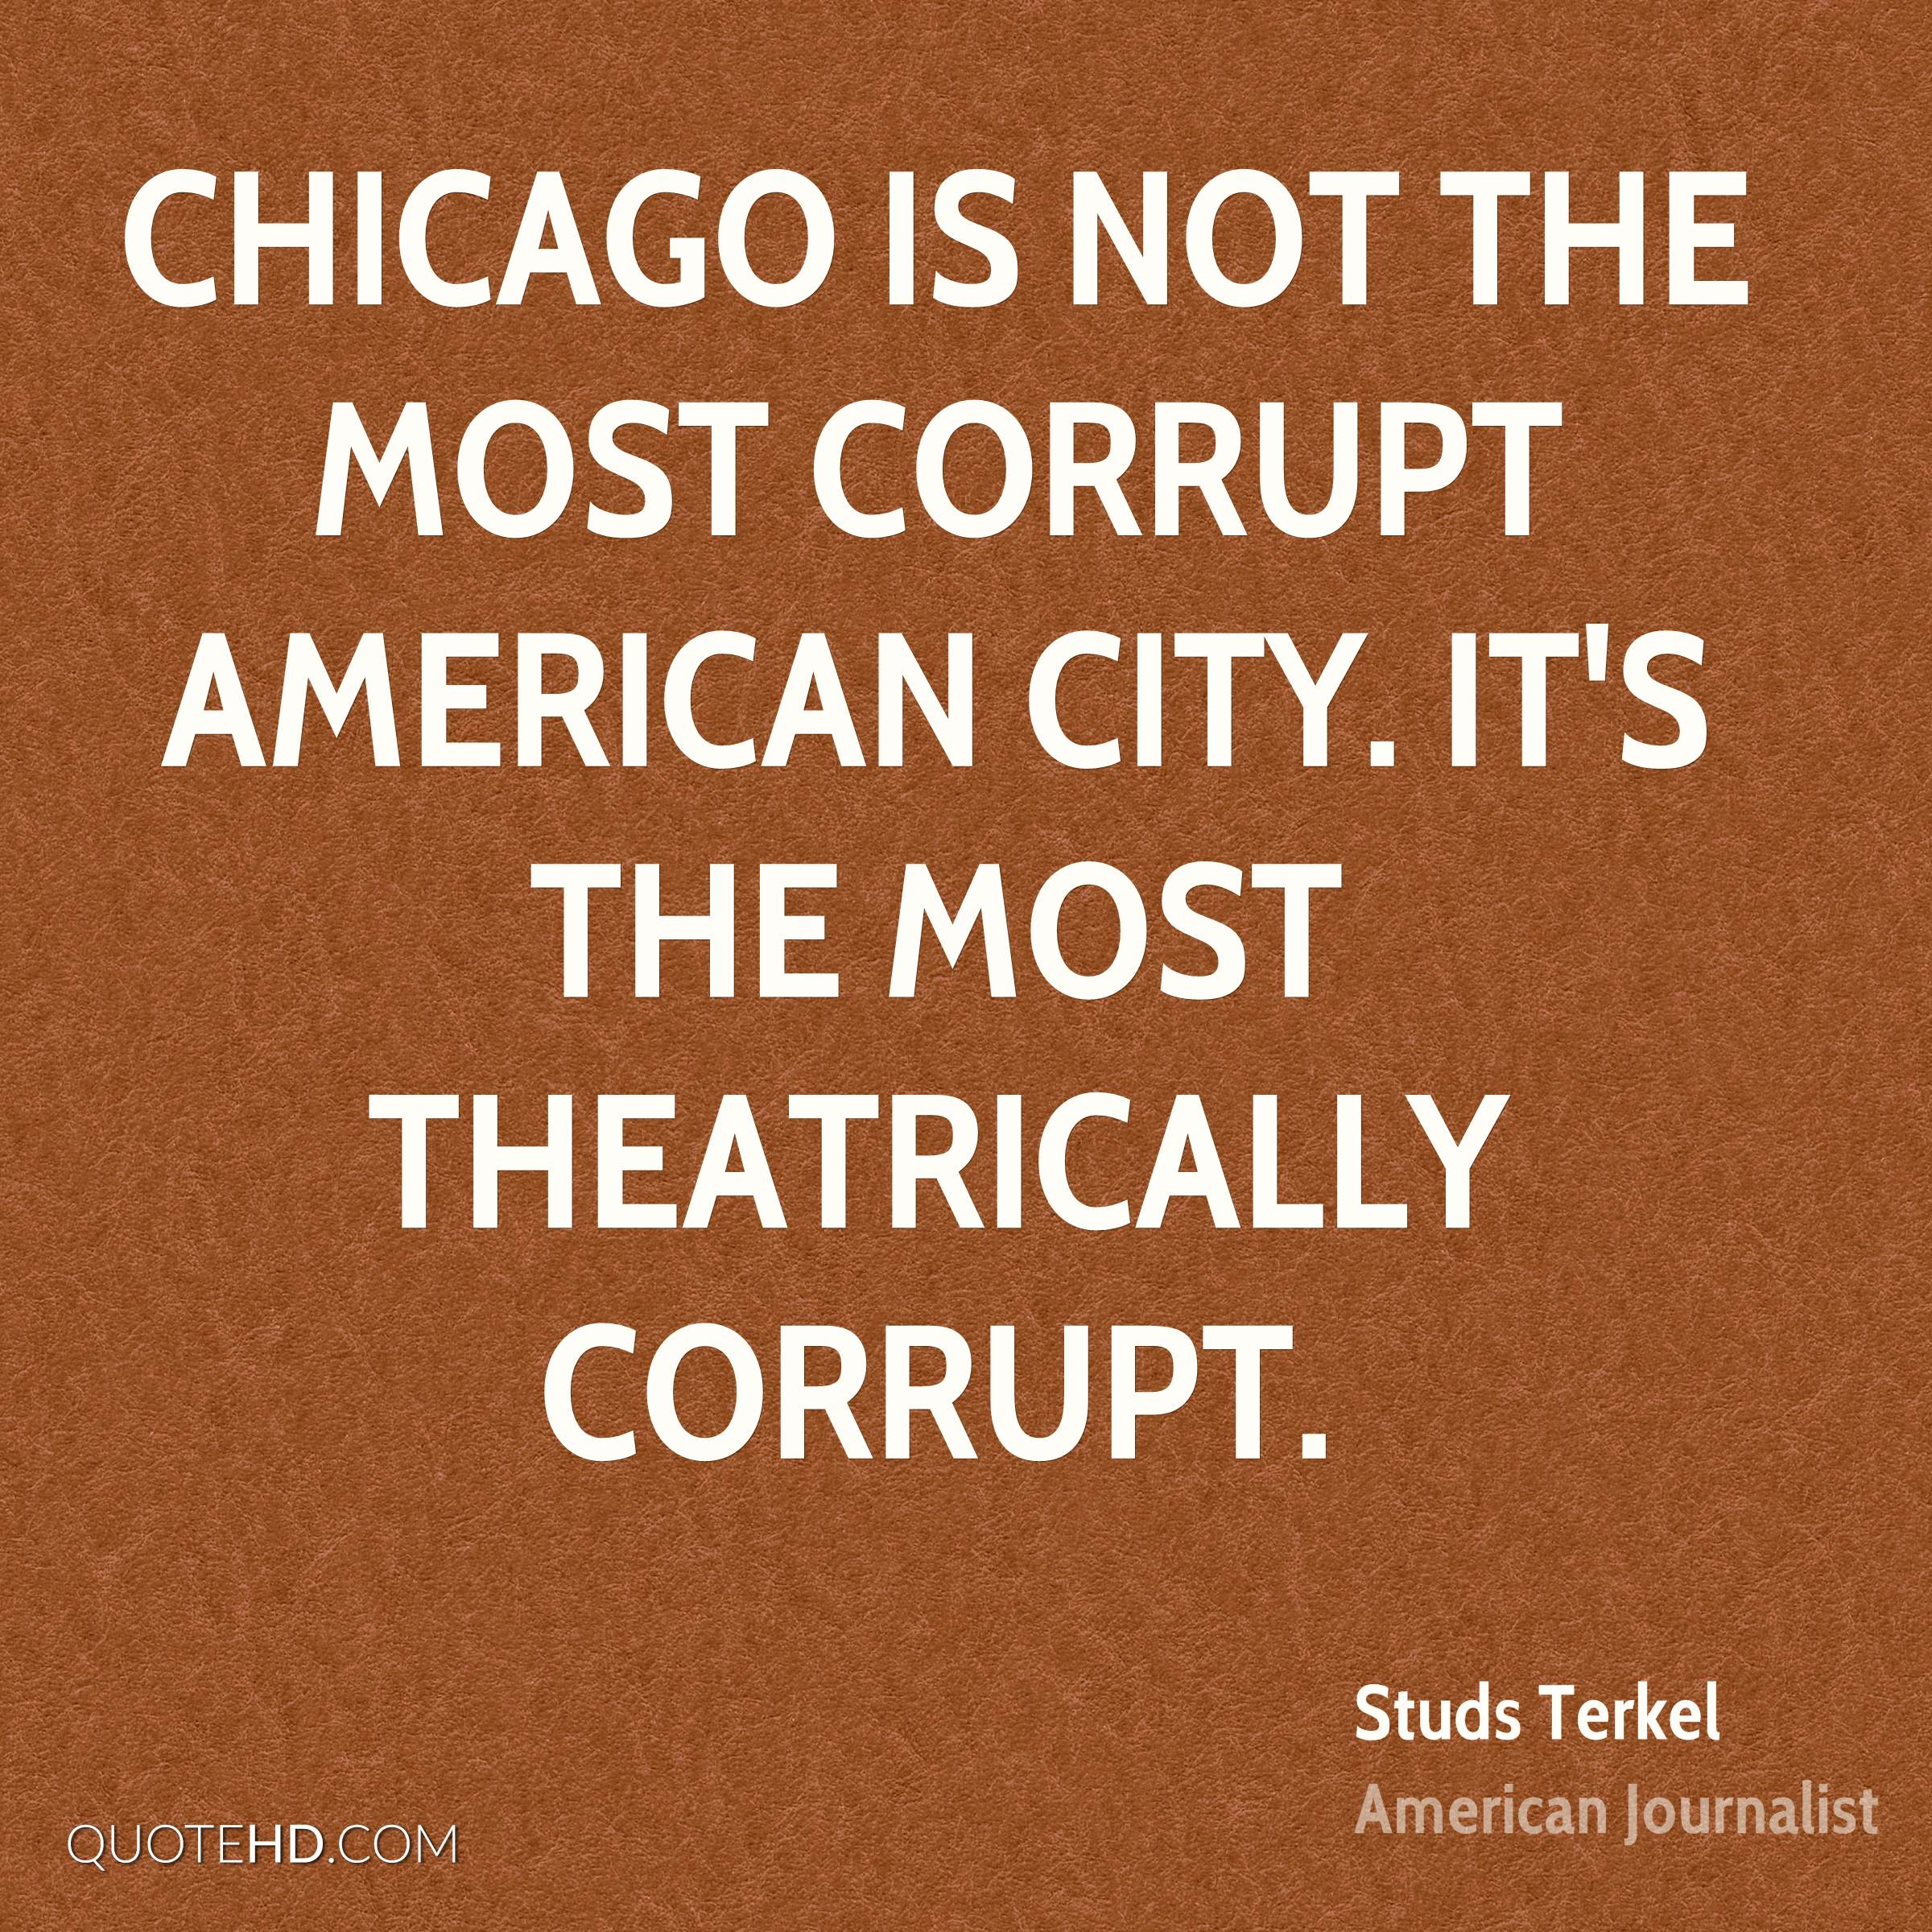 Chicago is not the most corrupt American city. It's the most theatrically corrupt.